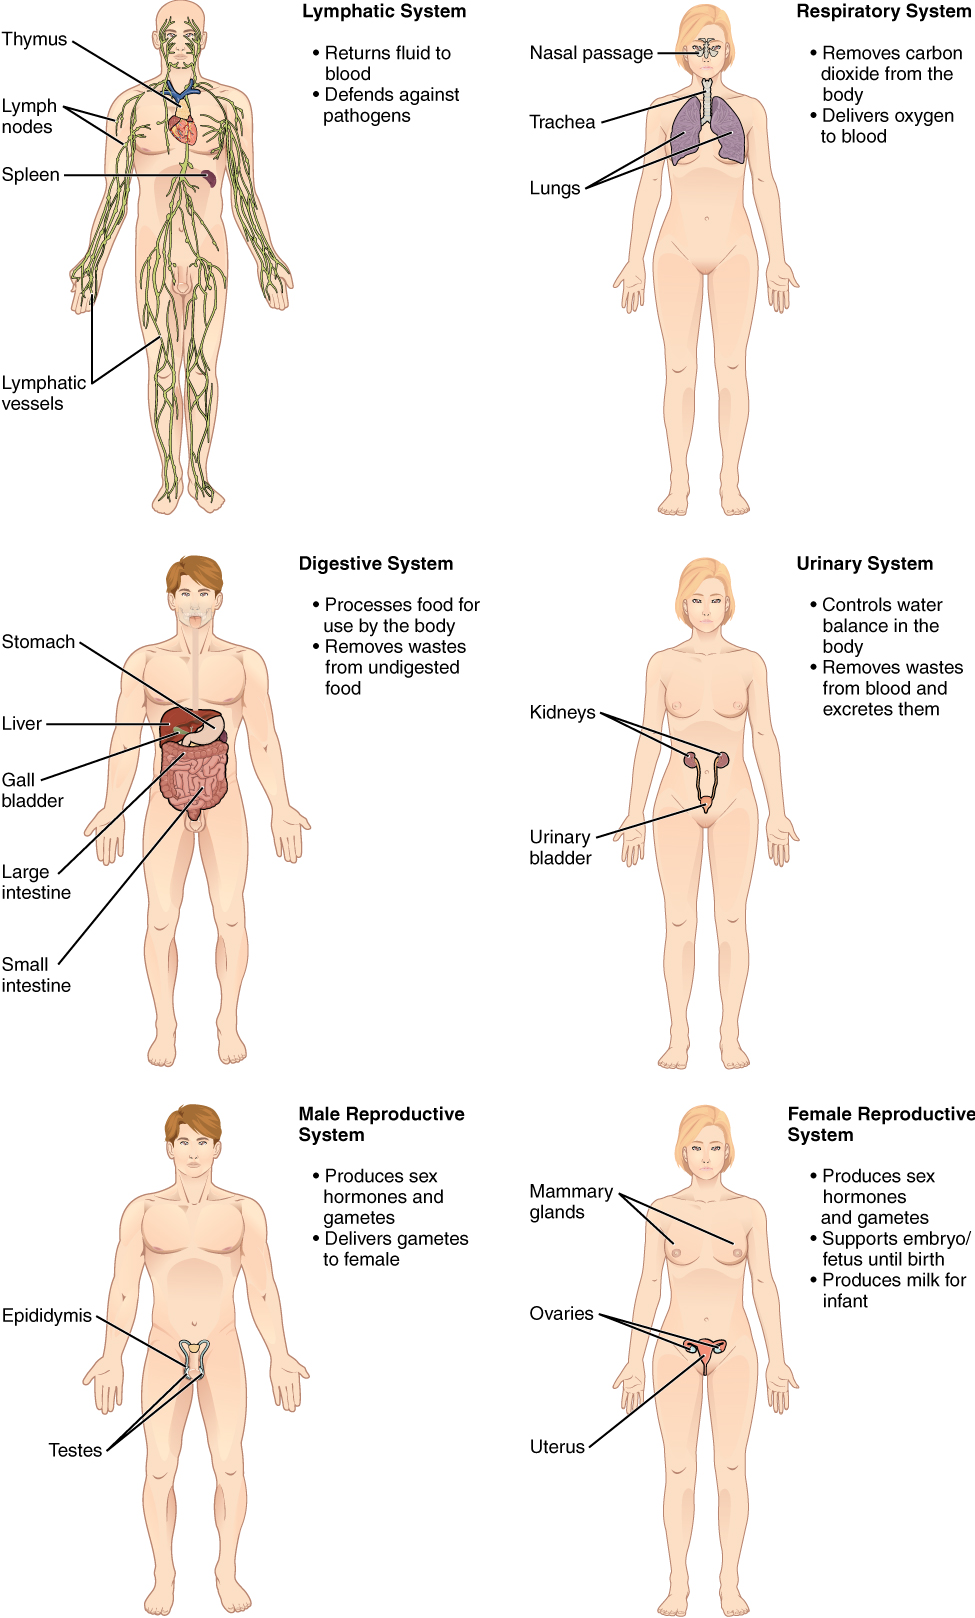 medium resolution of the lymphatic system returns fluid to the blood and defends against pathogens the lymphatic system